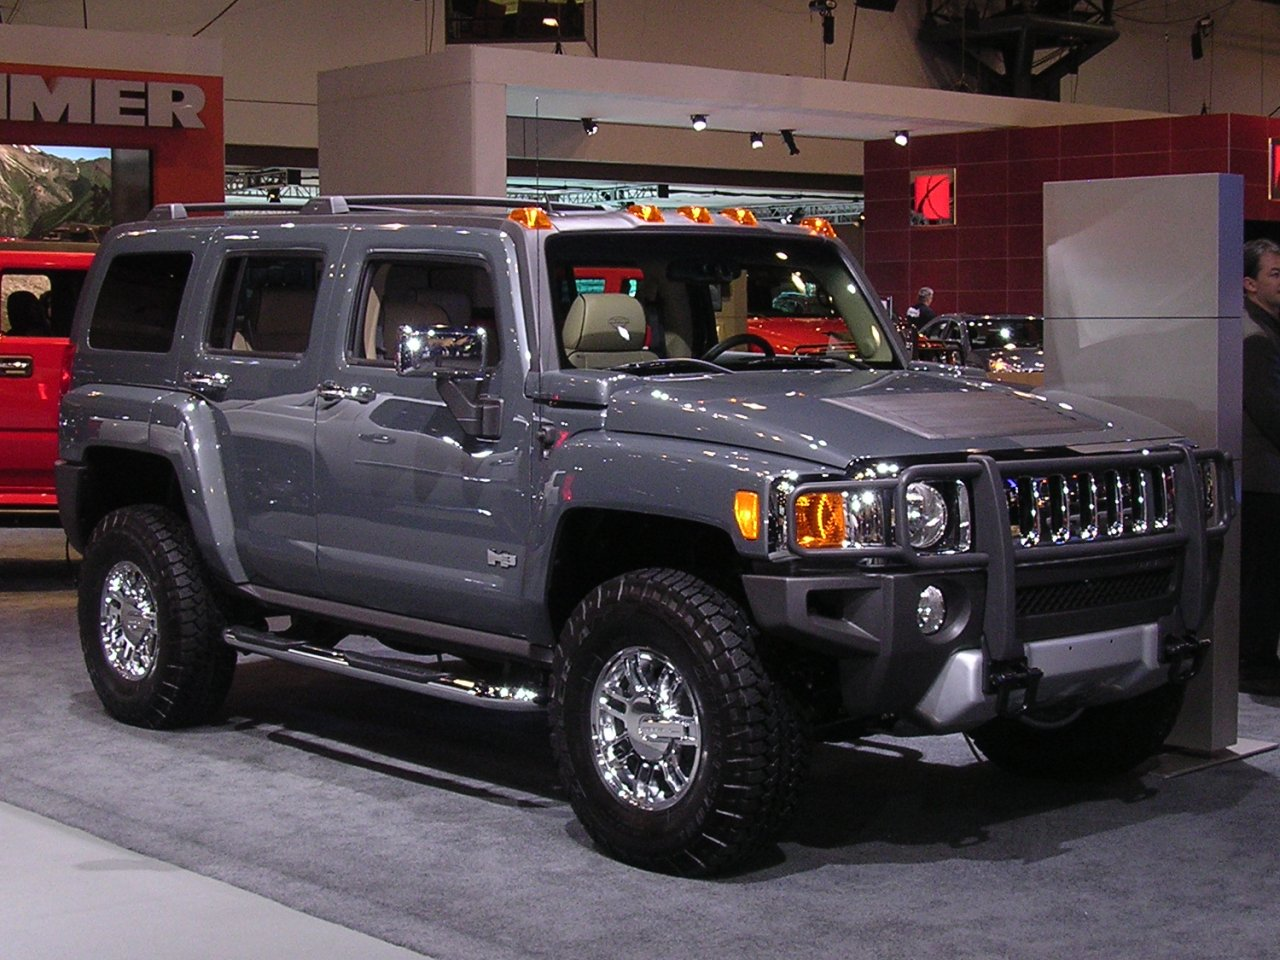 2011 Hummer H3 Wallpaper For Free